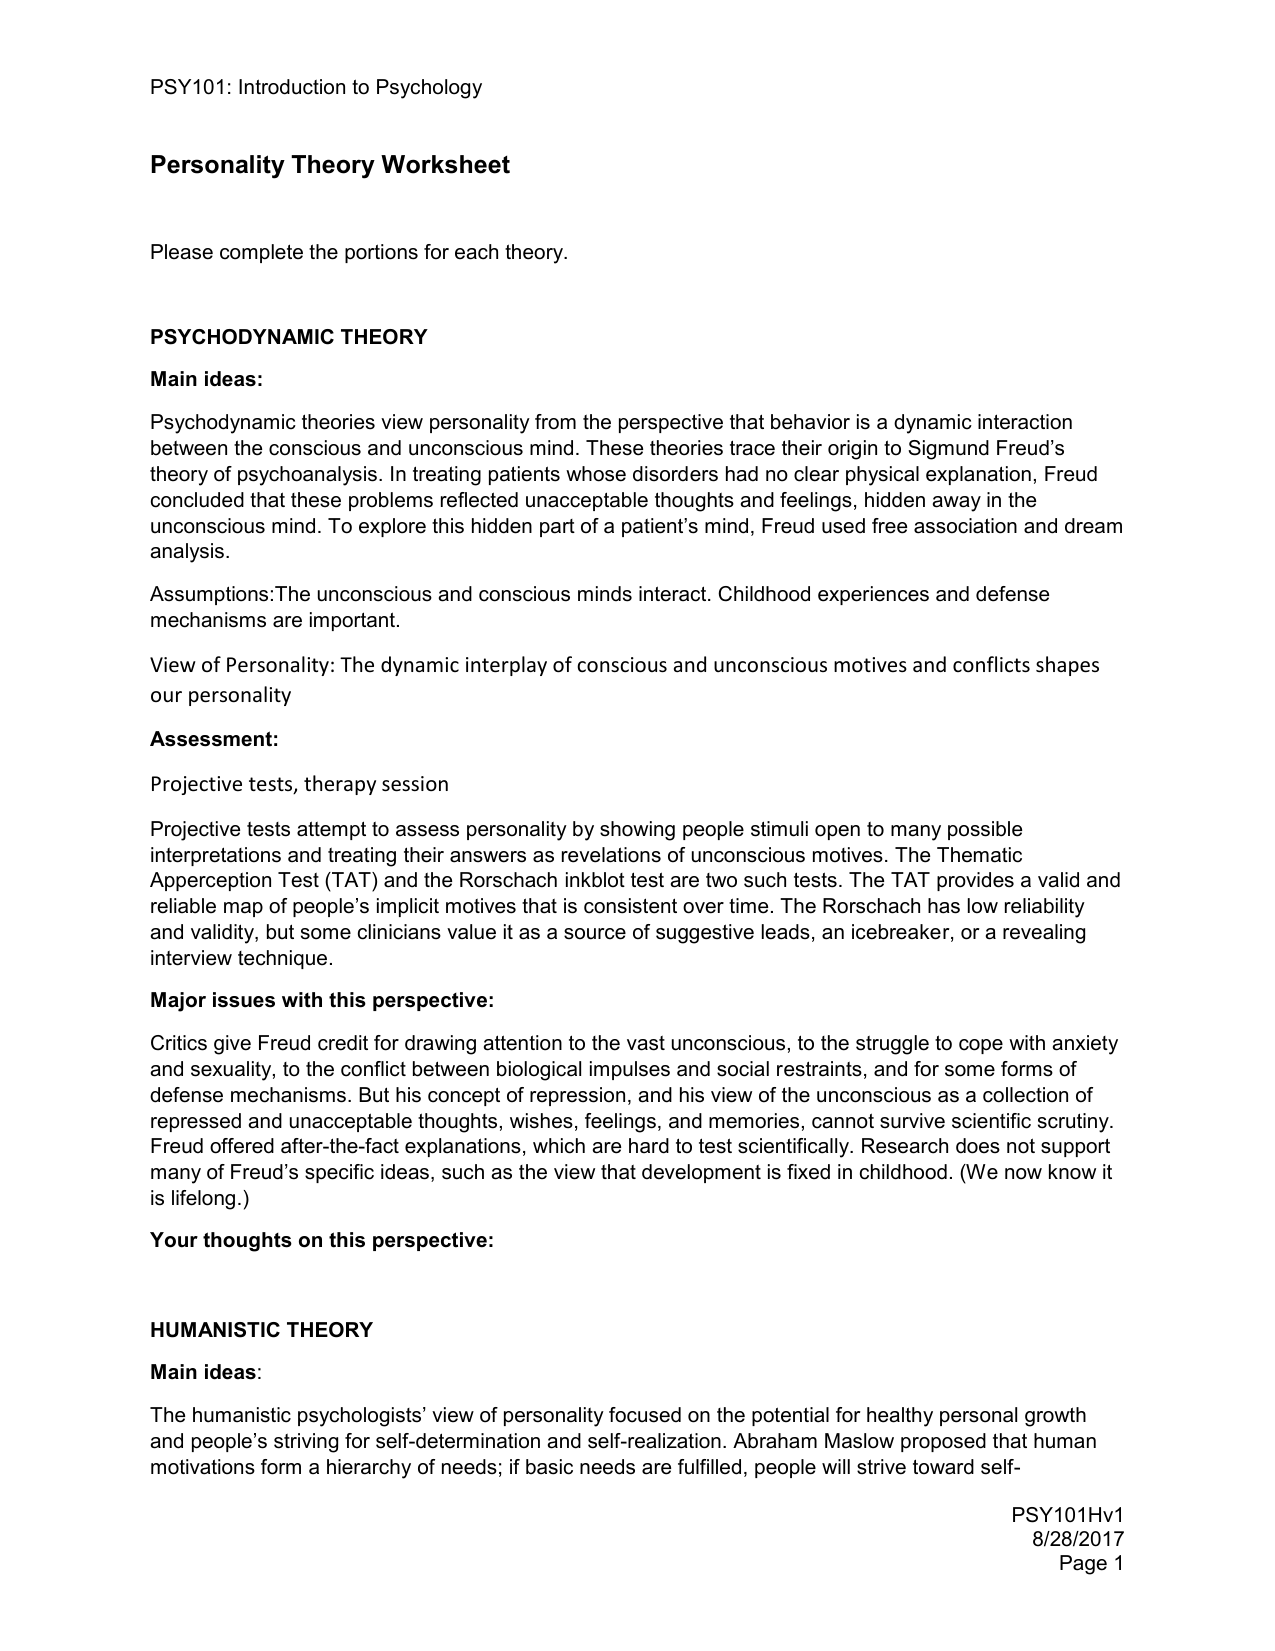 Psy101 Personality Theory Worksheet 1